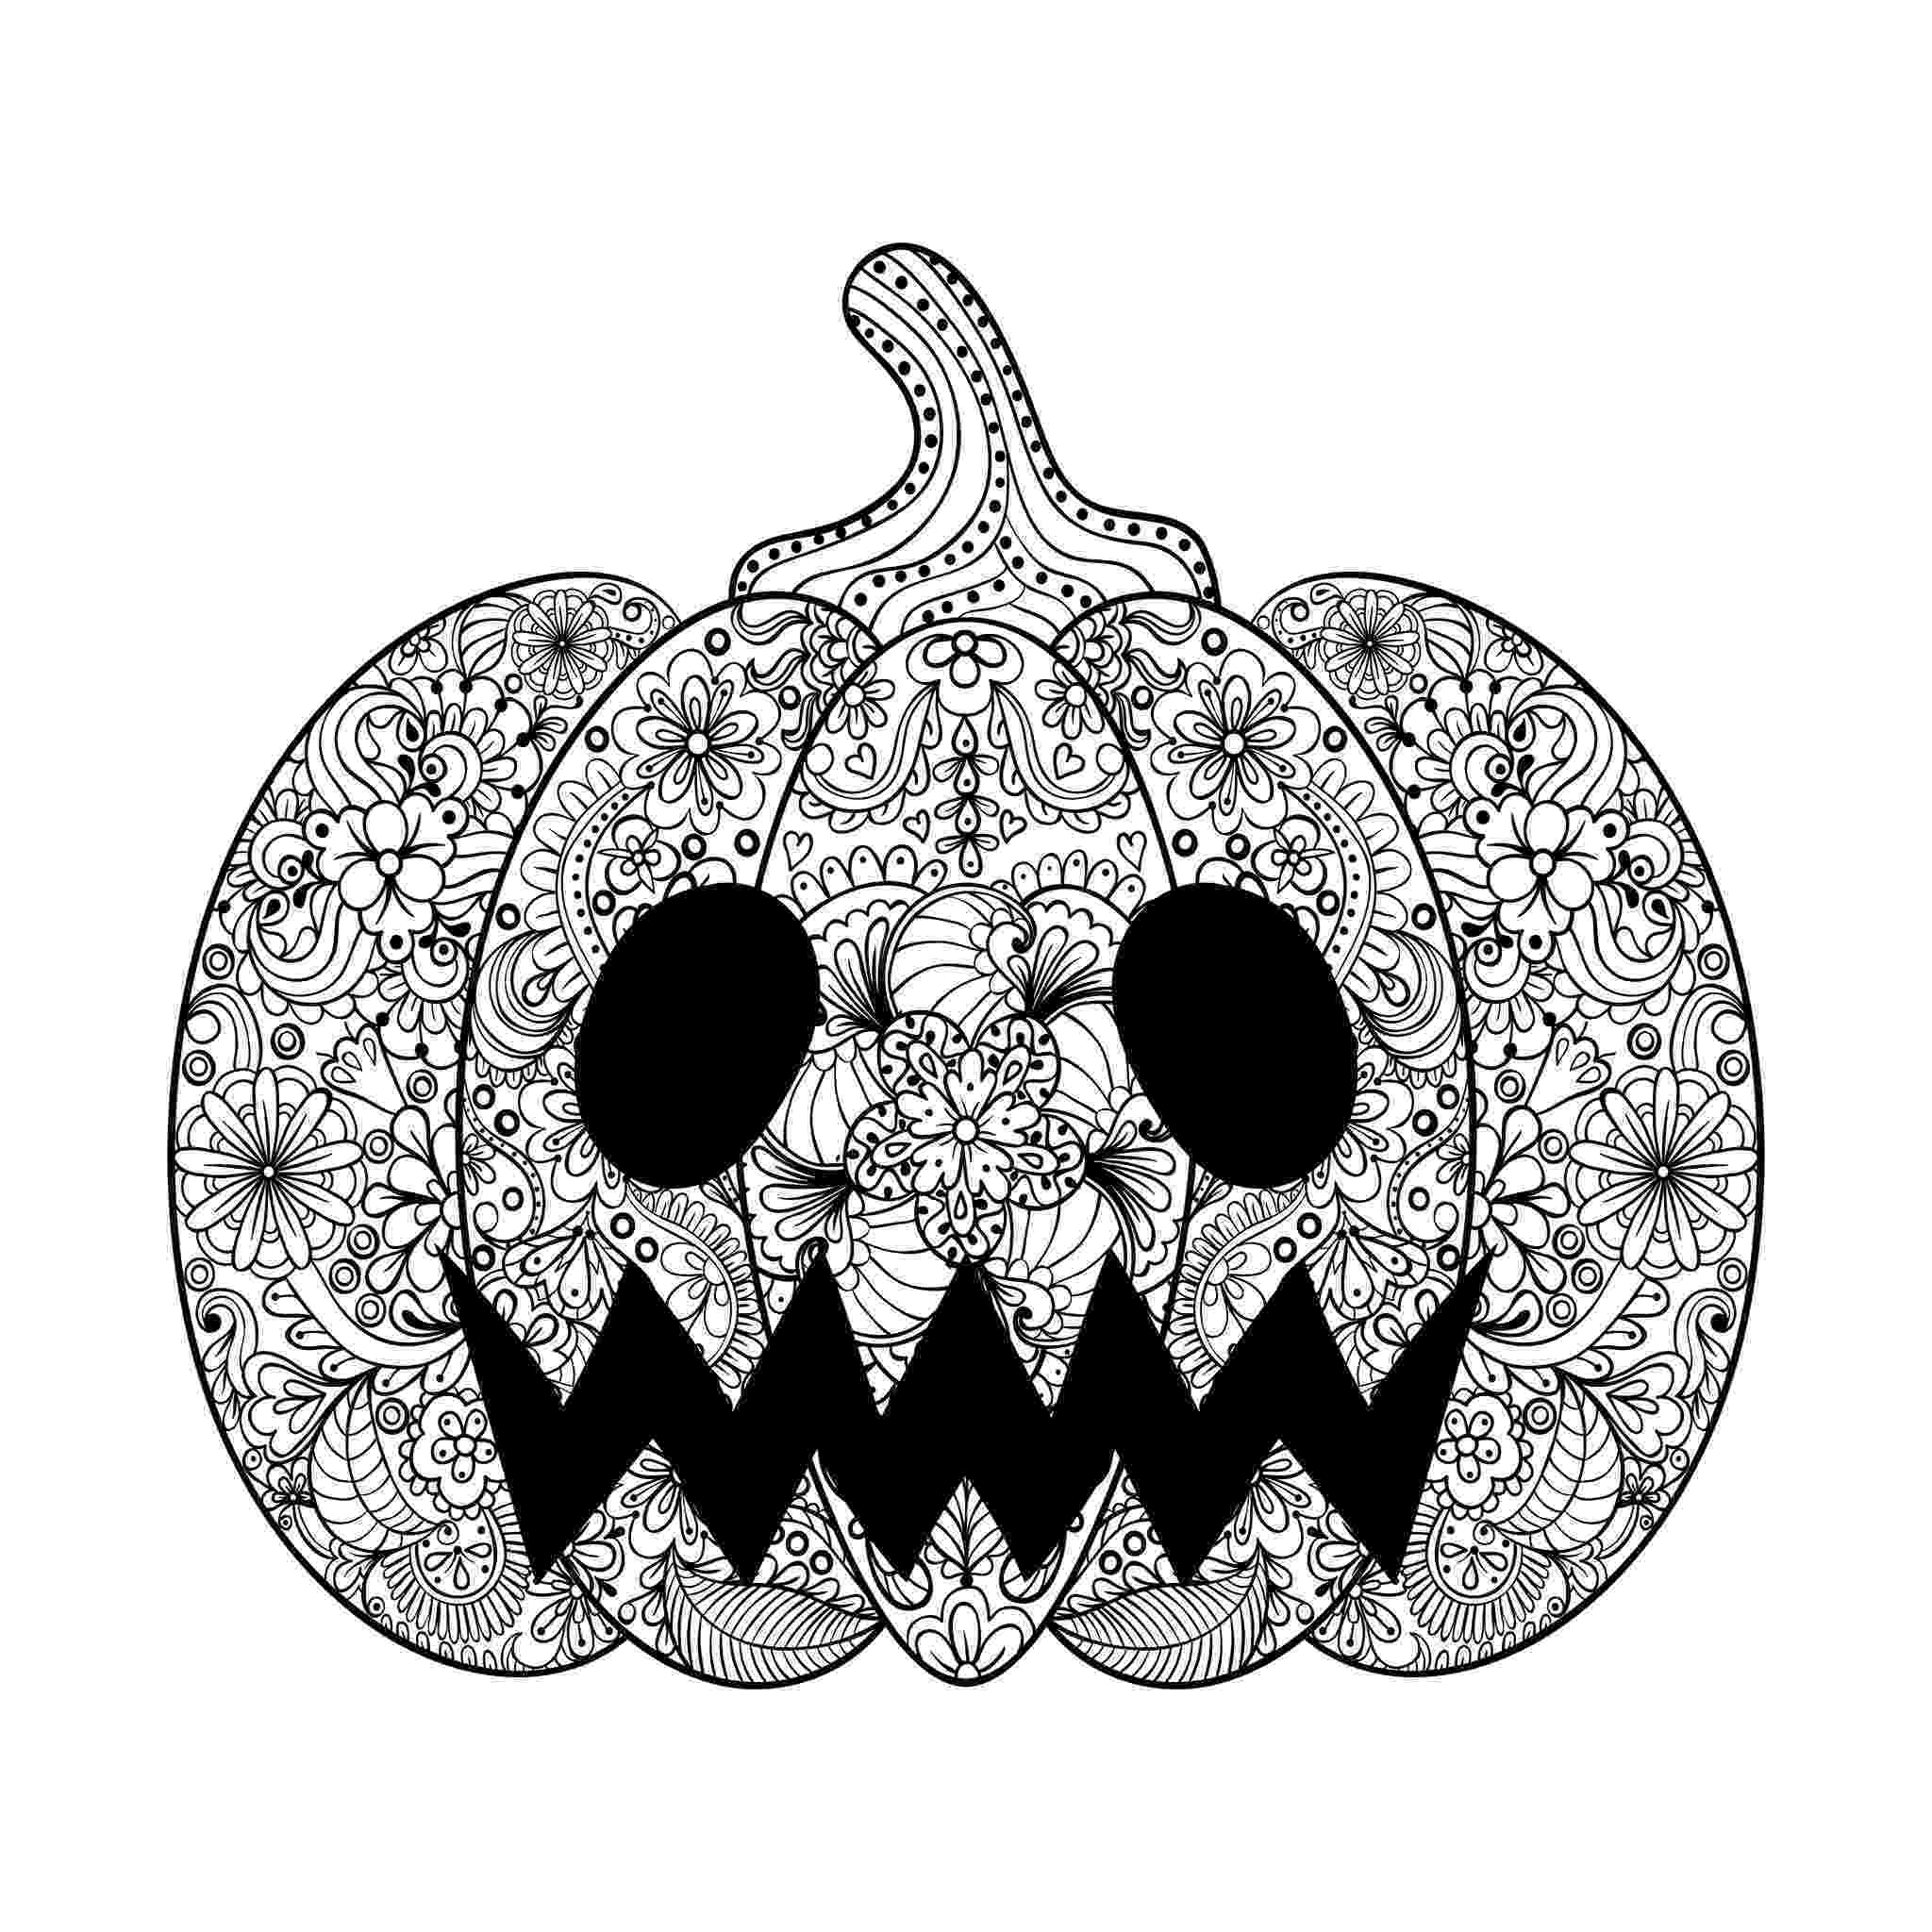 scary pumpkin coloring pages scary halloween pumpkin coloring pages team colors pumpkin pages coloring scary